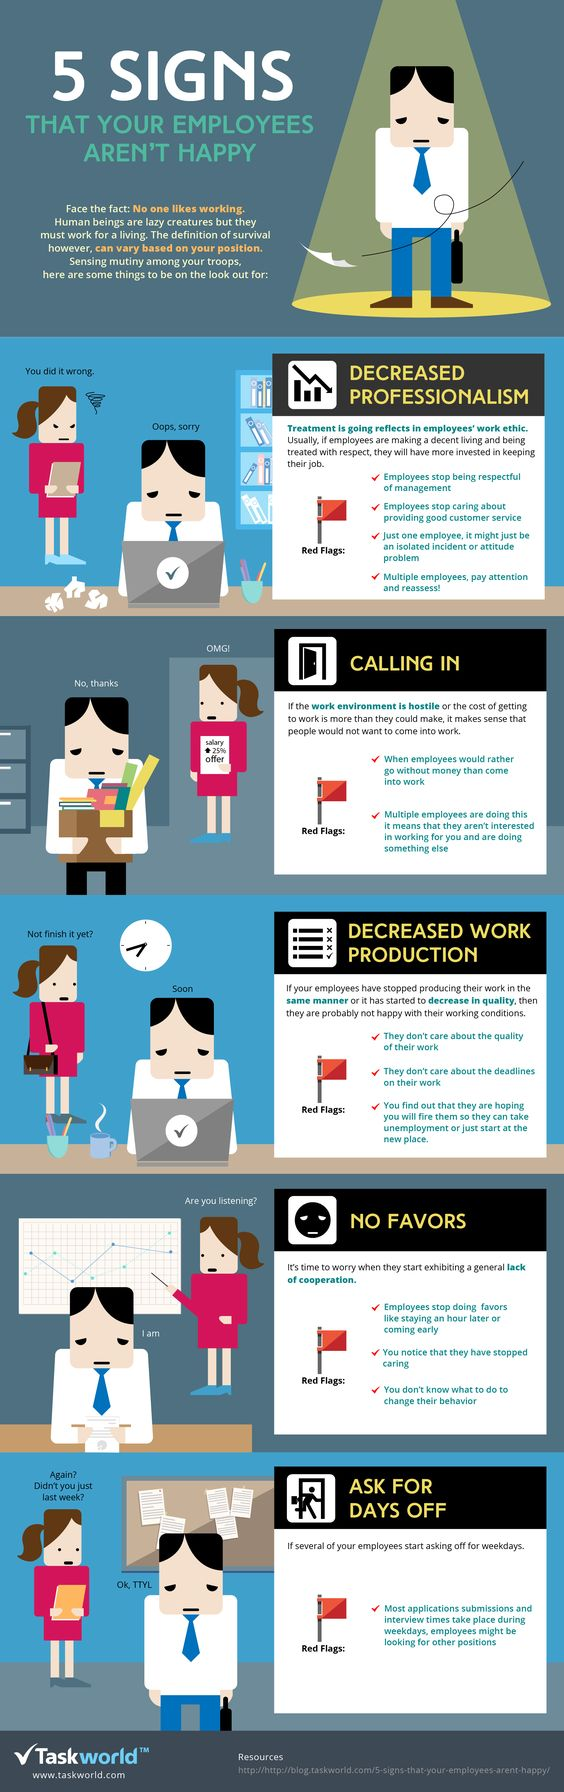 5 Signs That Your Employees Are Unhappy #infographic #Employees #Business